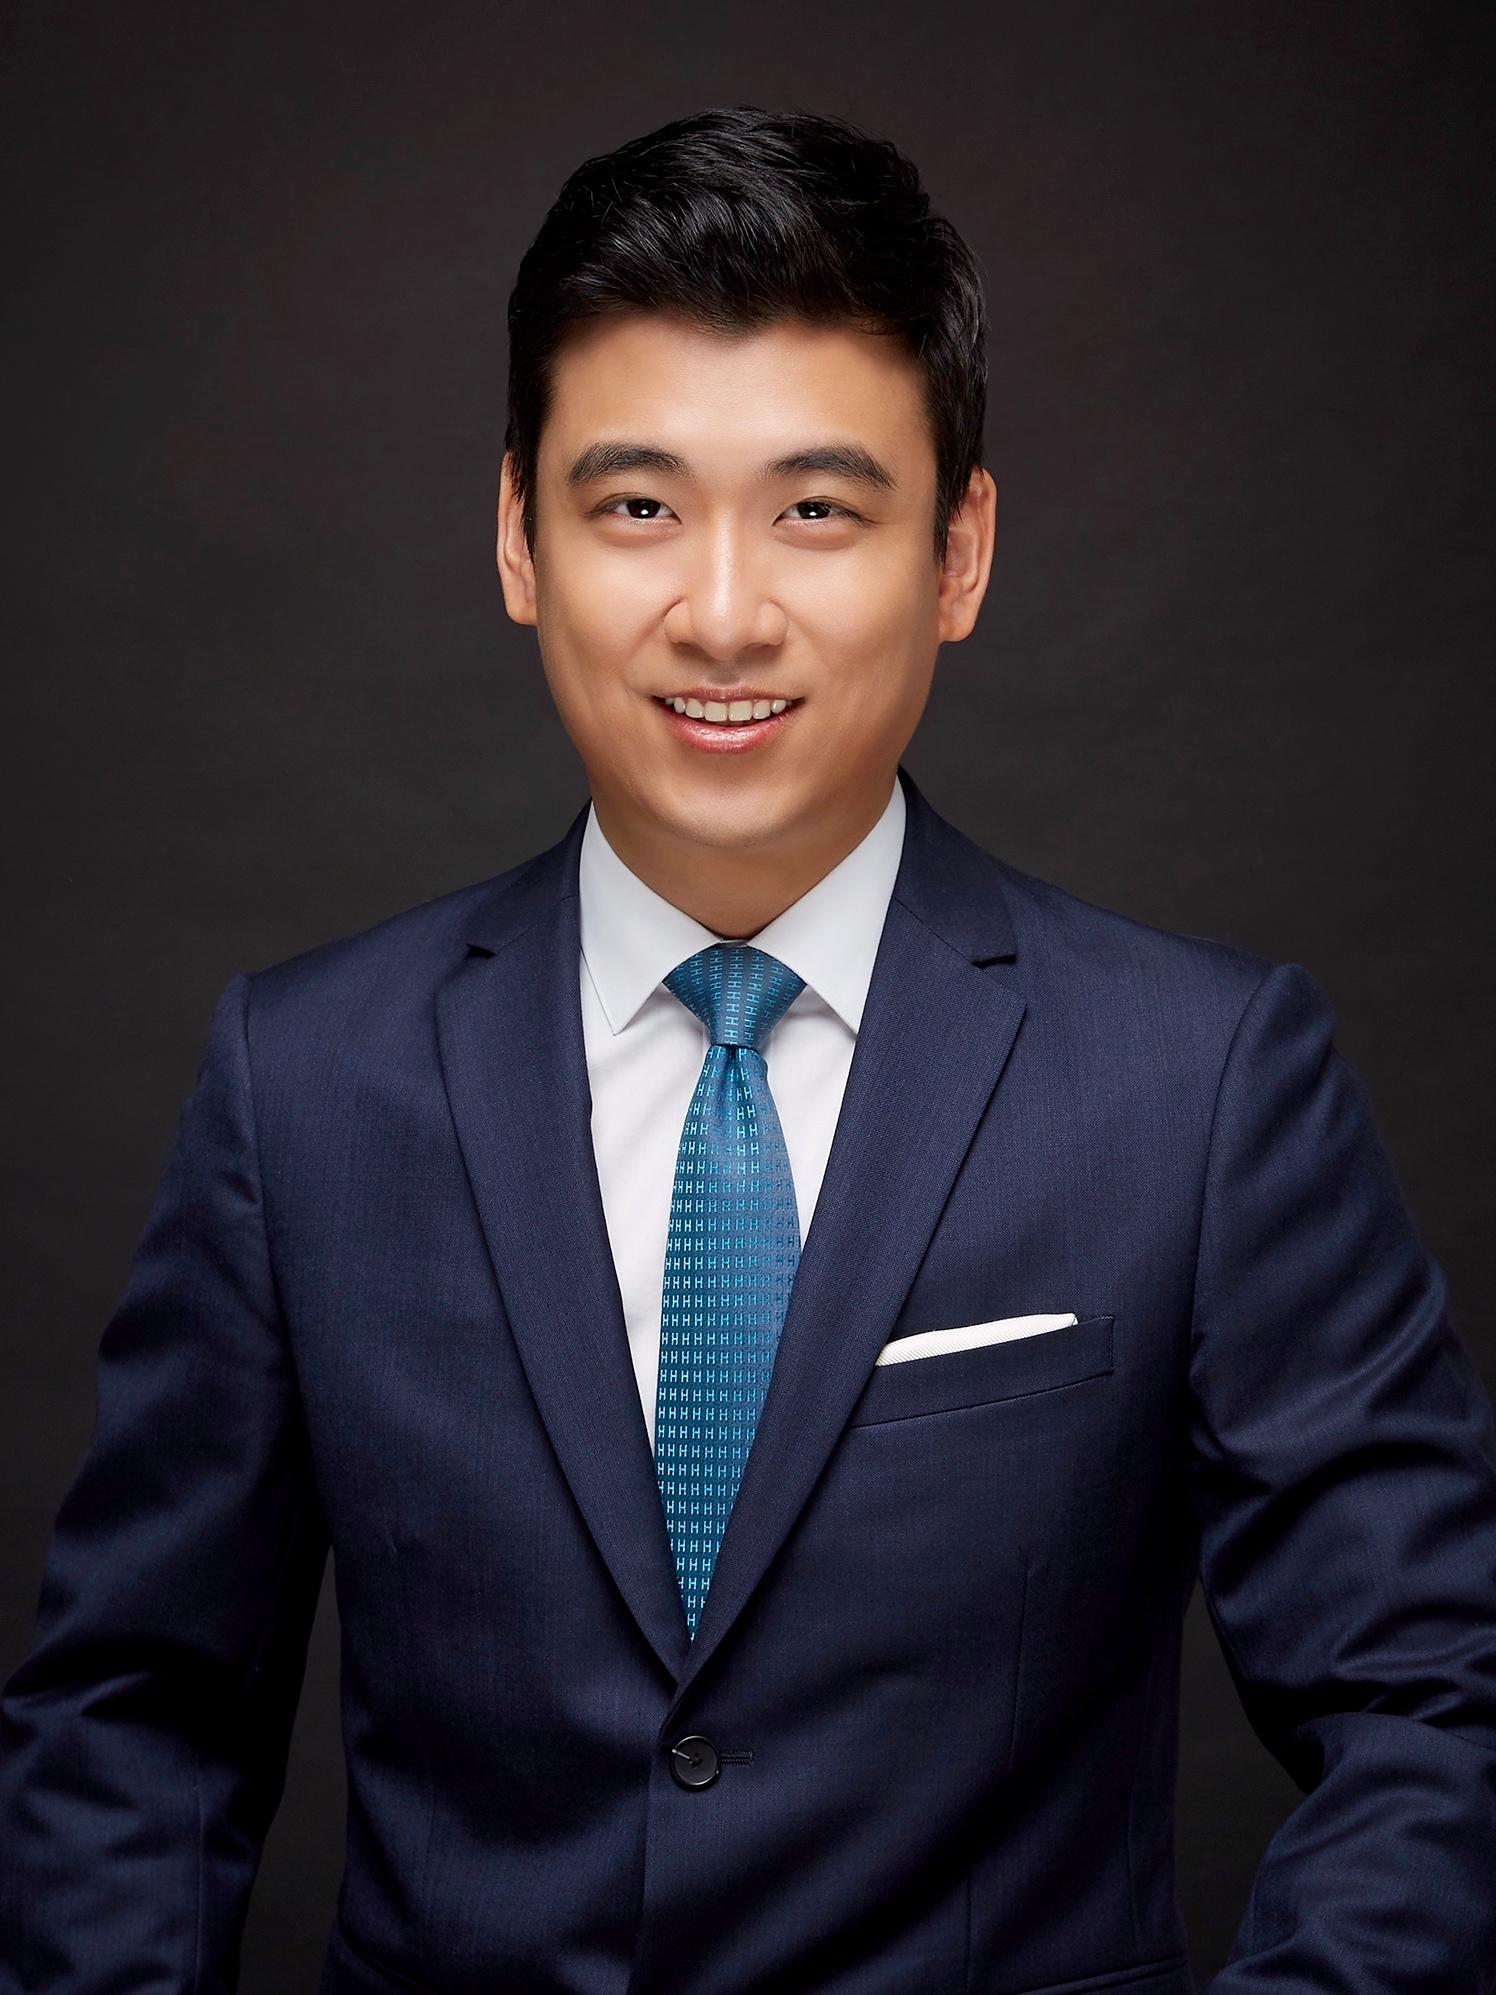 SHAWN SUNGHYUN JEONG Financial Advisor